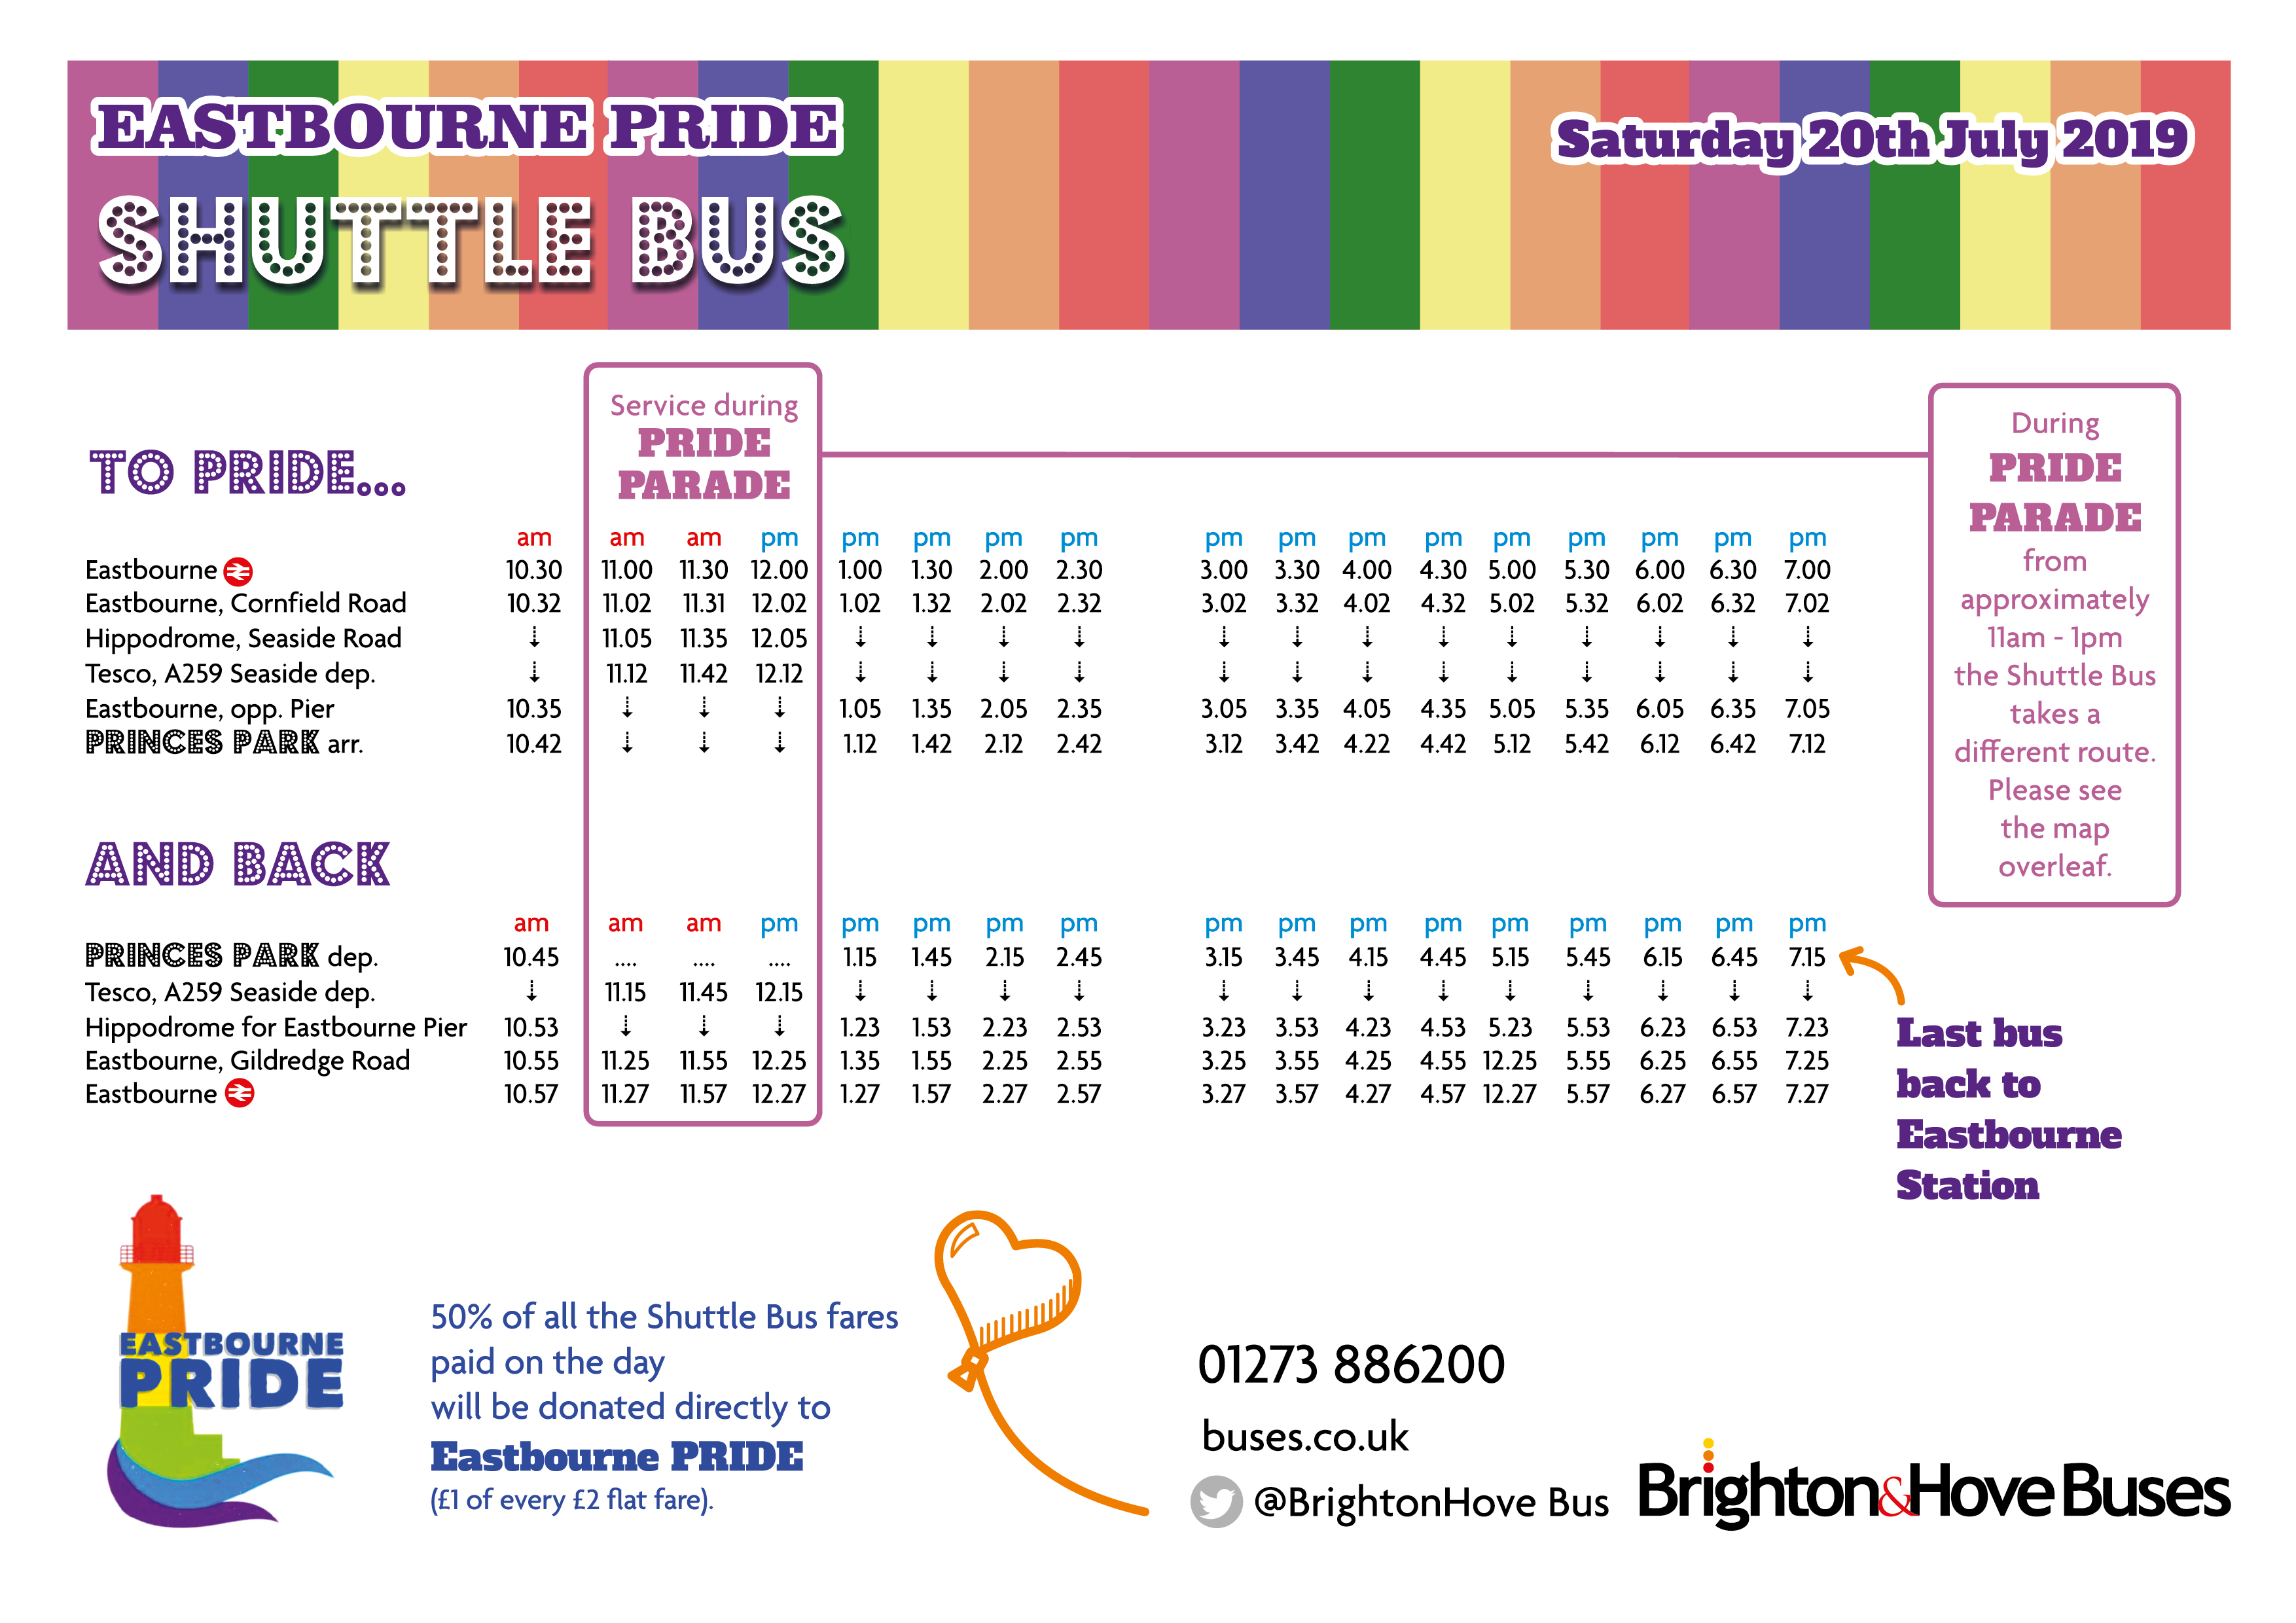 Timetable for Eastbourne Pride Shuttle